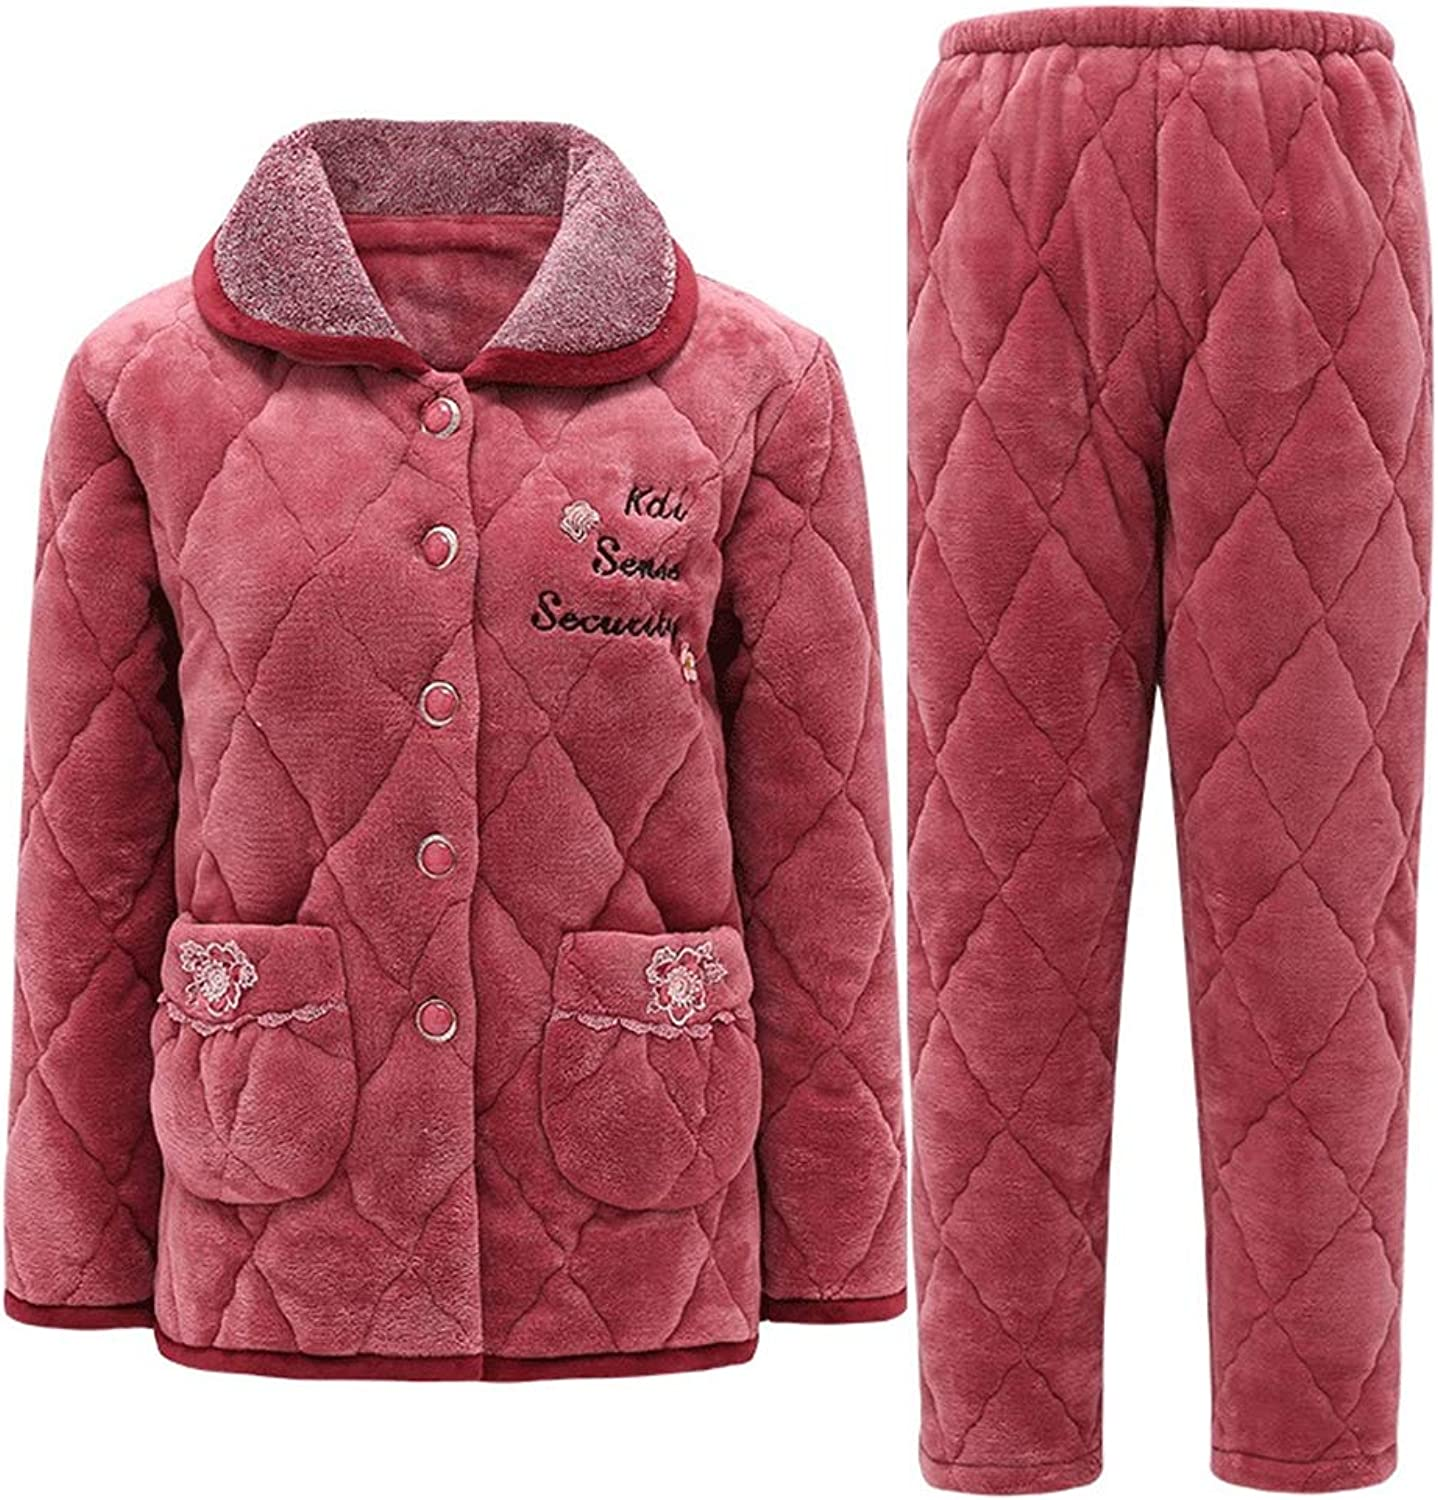 LeeQn Winter Ladies Lapel Quilted Thick Warm Flannel Pajamas Suit Nightclothes